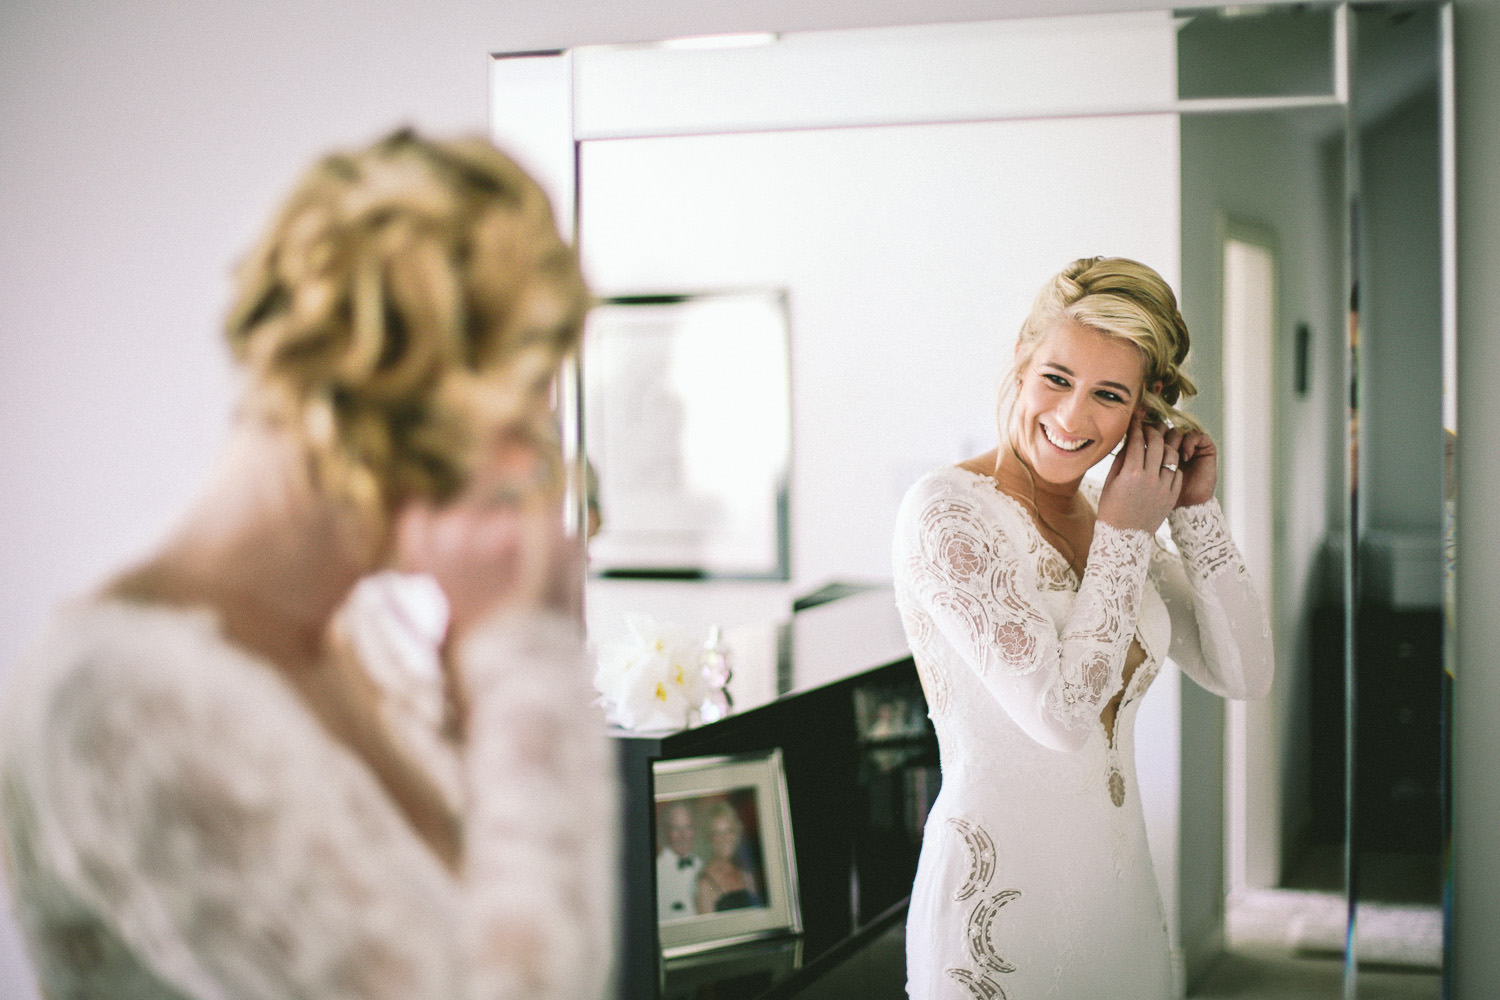 Lancashire wedding Wrea Green bride getting ready in Berta wedding dress